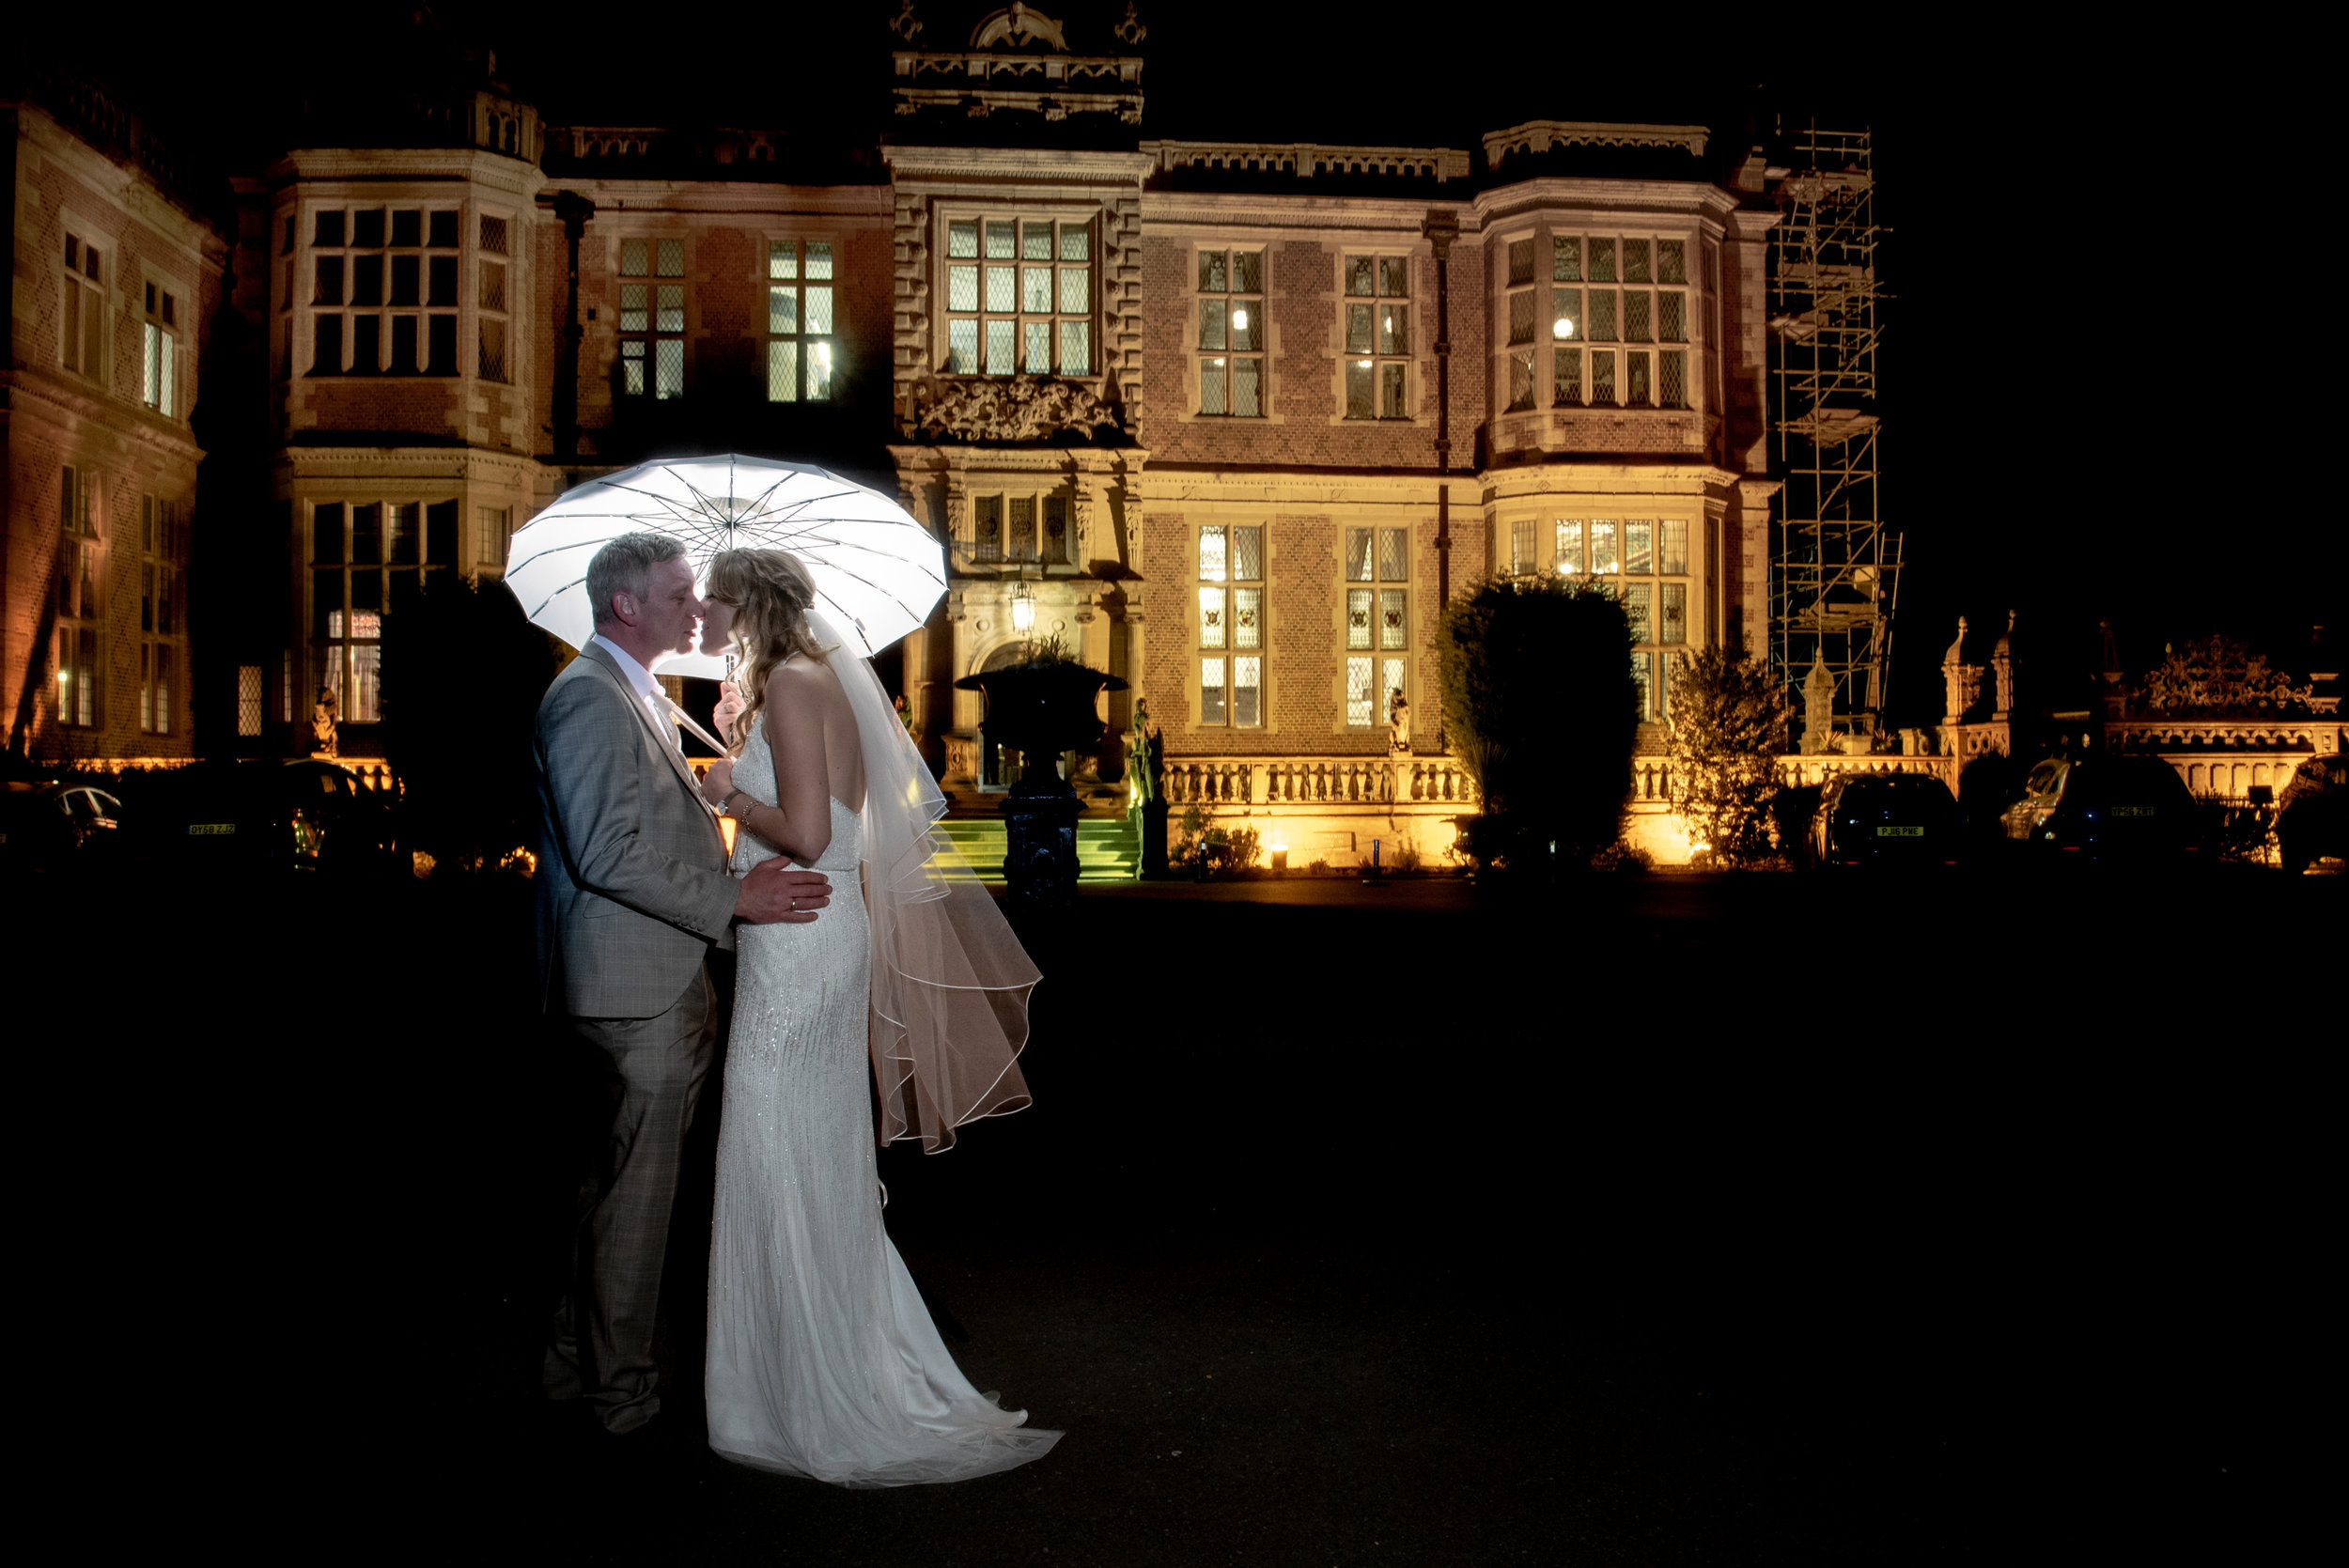 Nighttime photoshoot wedding at Crewe Hall